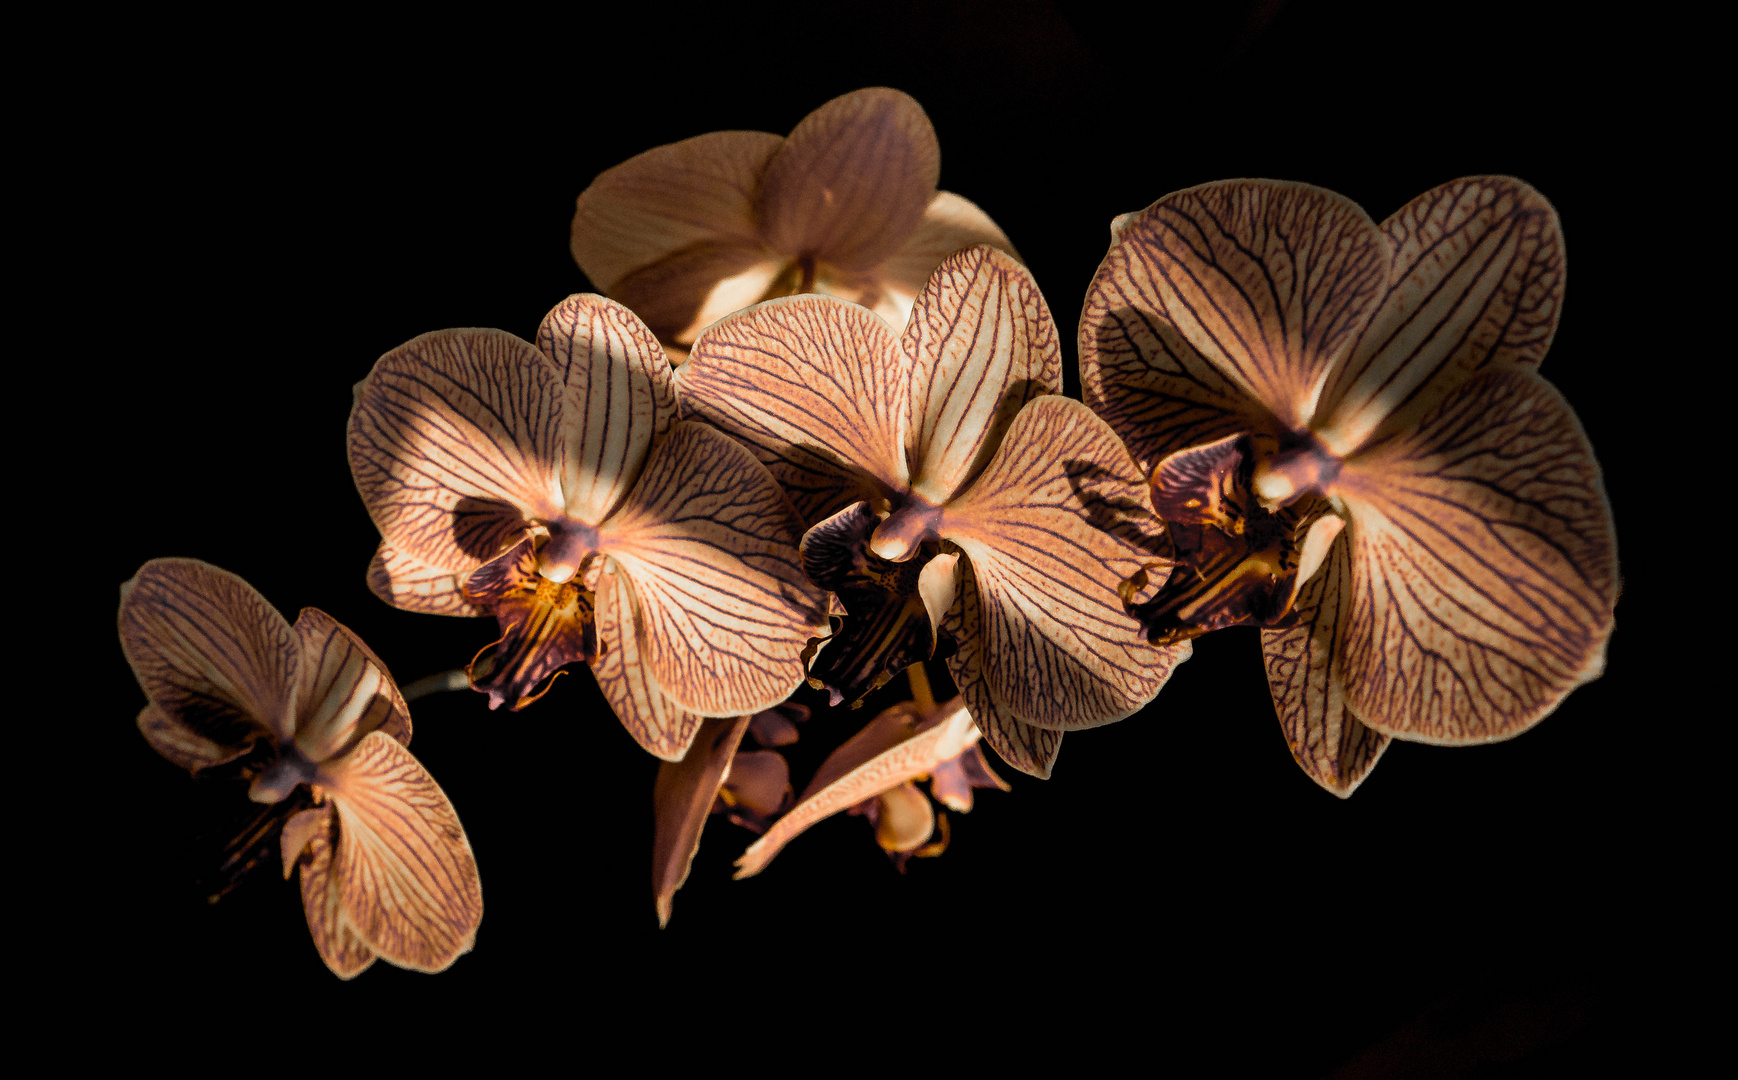 Faszination Orchidee 1